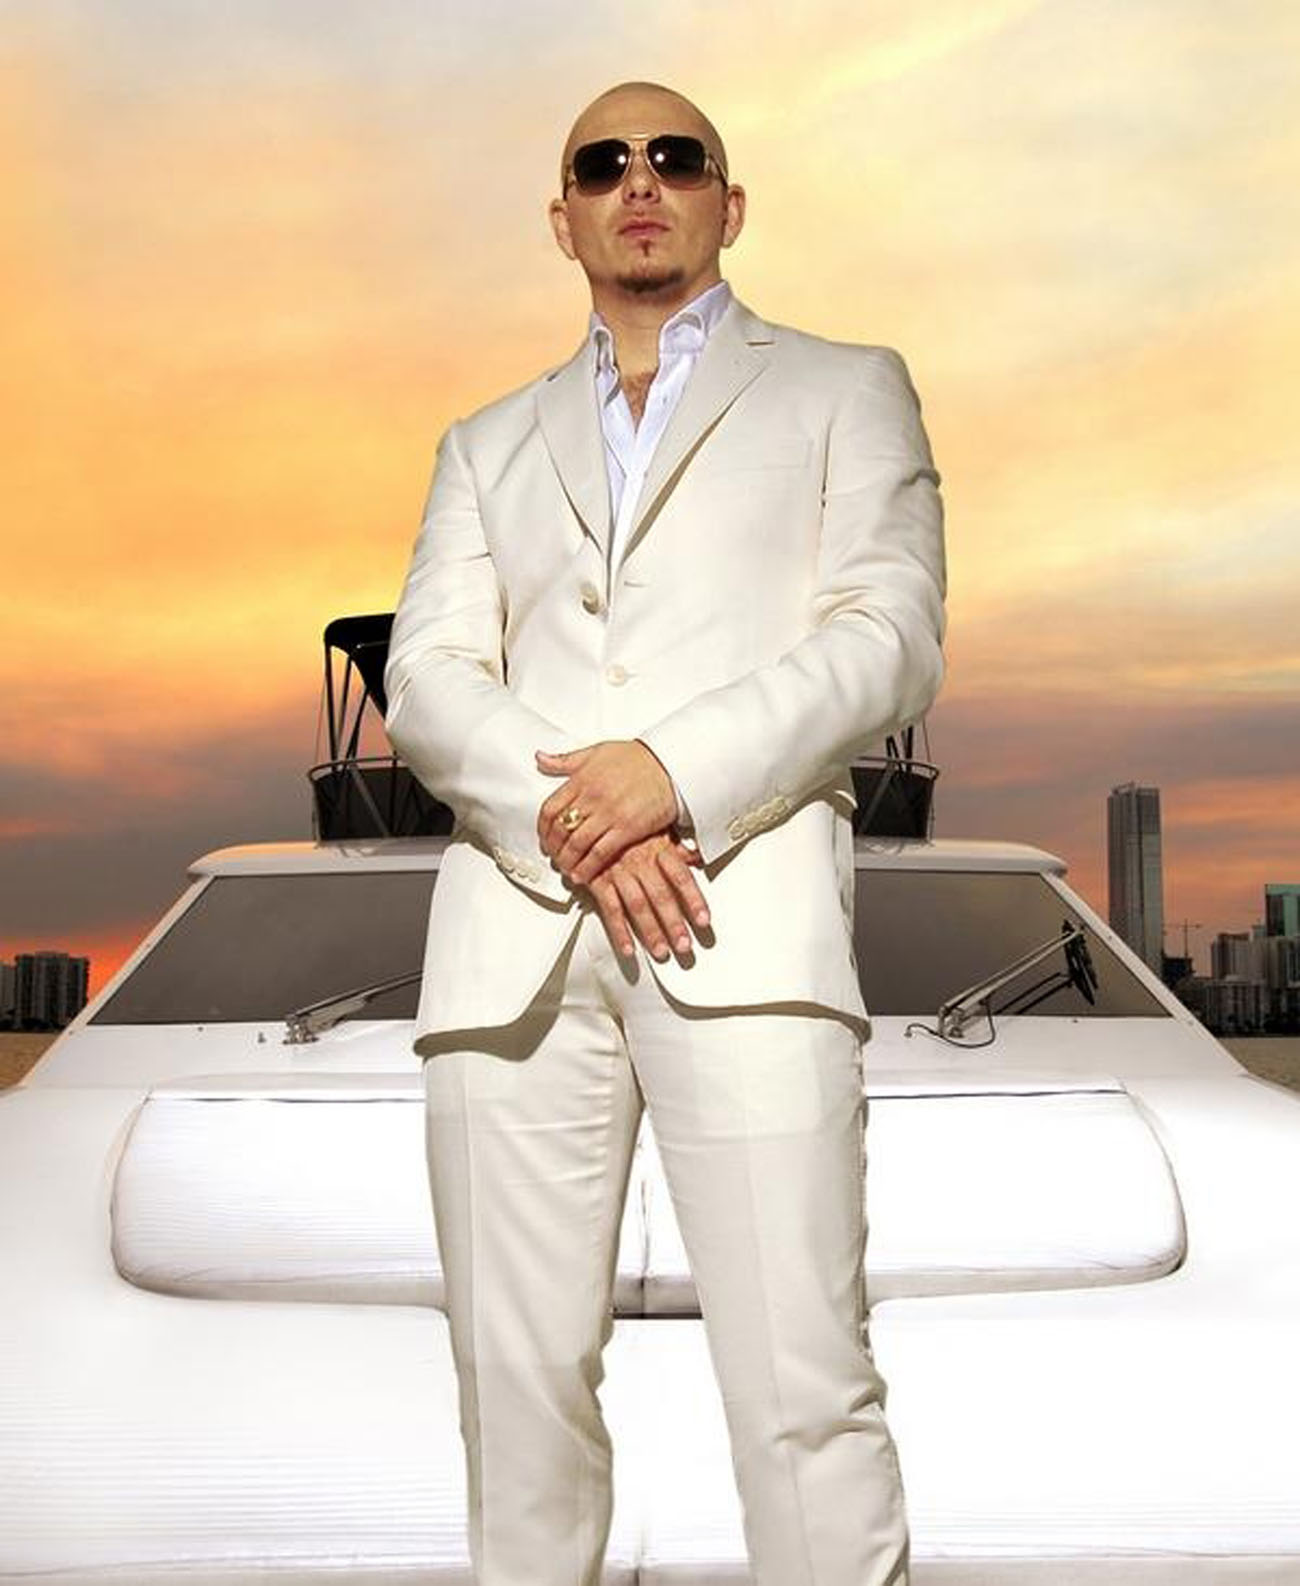 fotos de pitbull 3